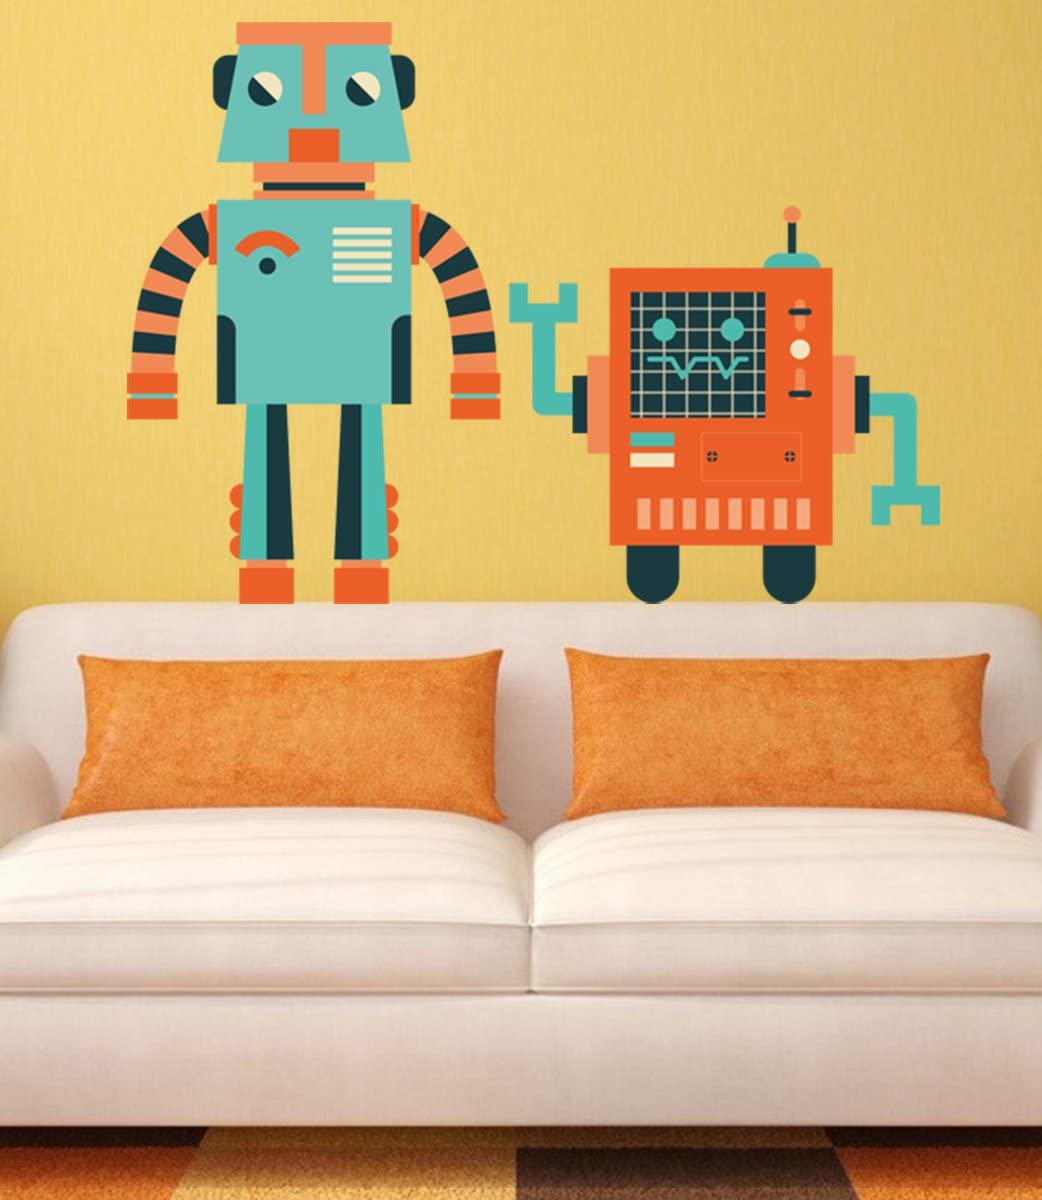 STICKERSFORLIFE ced727 Full Color Wall Decal Sticker for a boy Robot Bedroom Children's Room